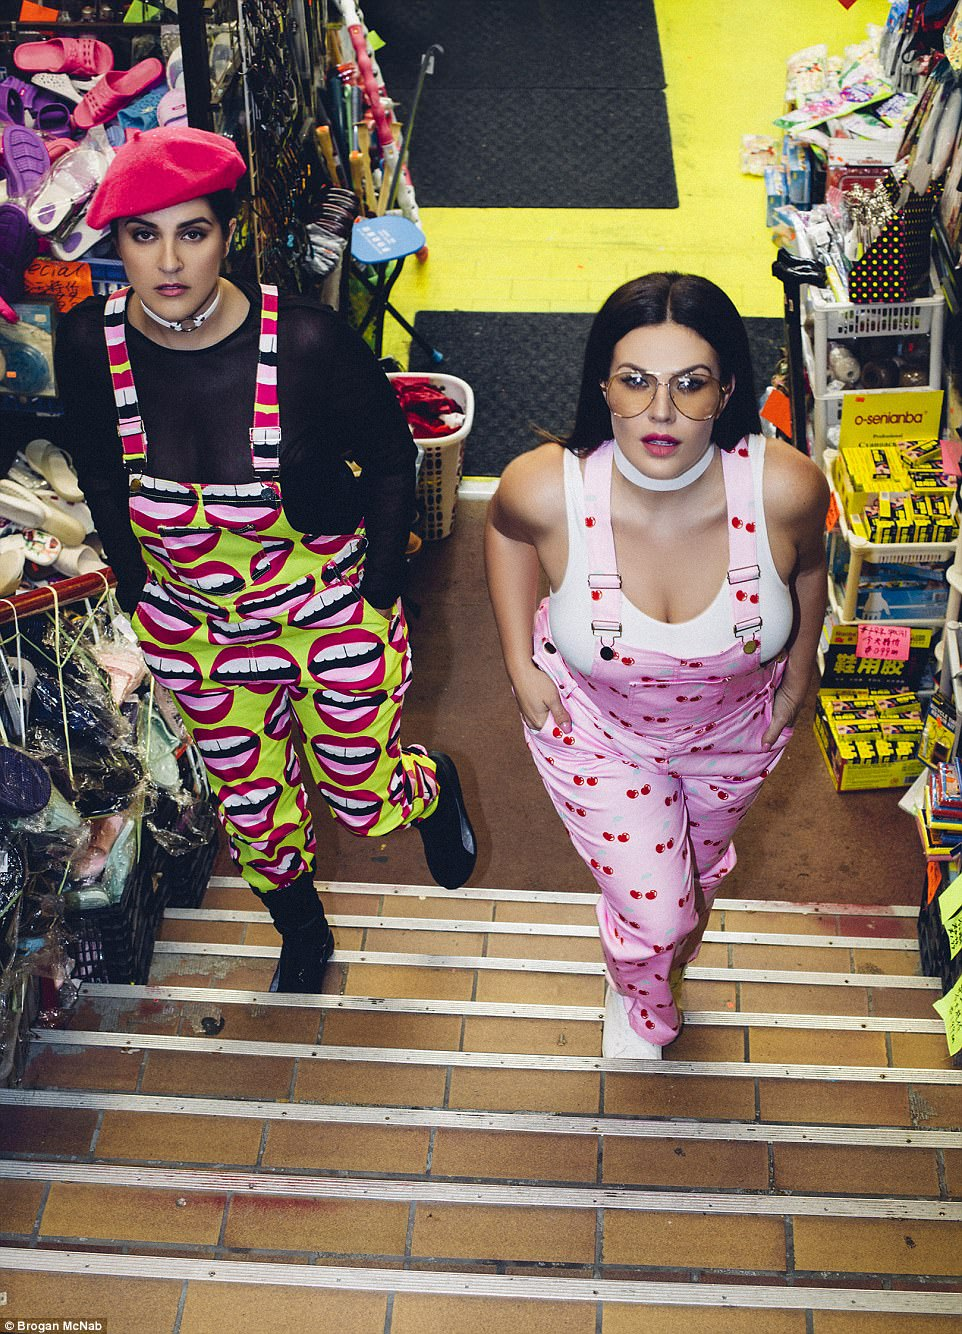 Breaking boundaries: Tia Duffy (left) and Christina Schmidth, both a size 14 (US 10), have teamed up with Canadian designer Hayley Elsaesser - who has dressed the likes of Miley Cyrus - for the striking images which were shot in downtown Toronto